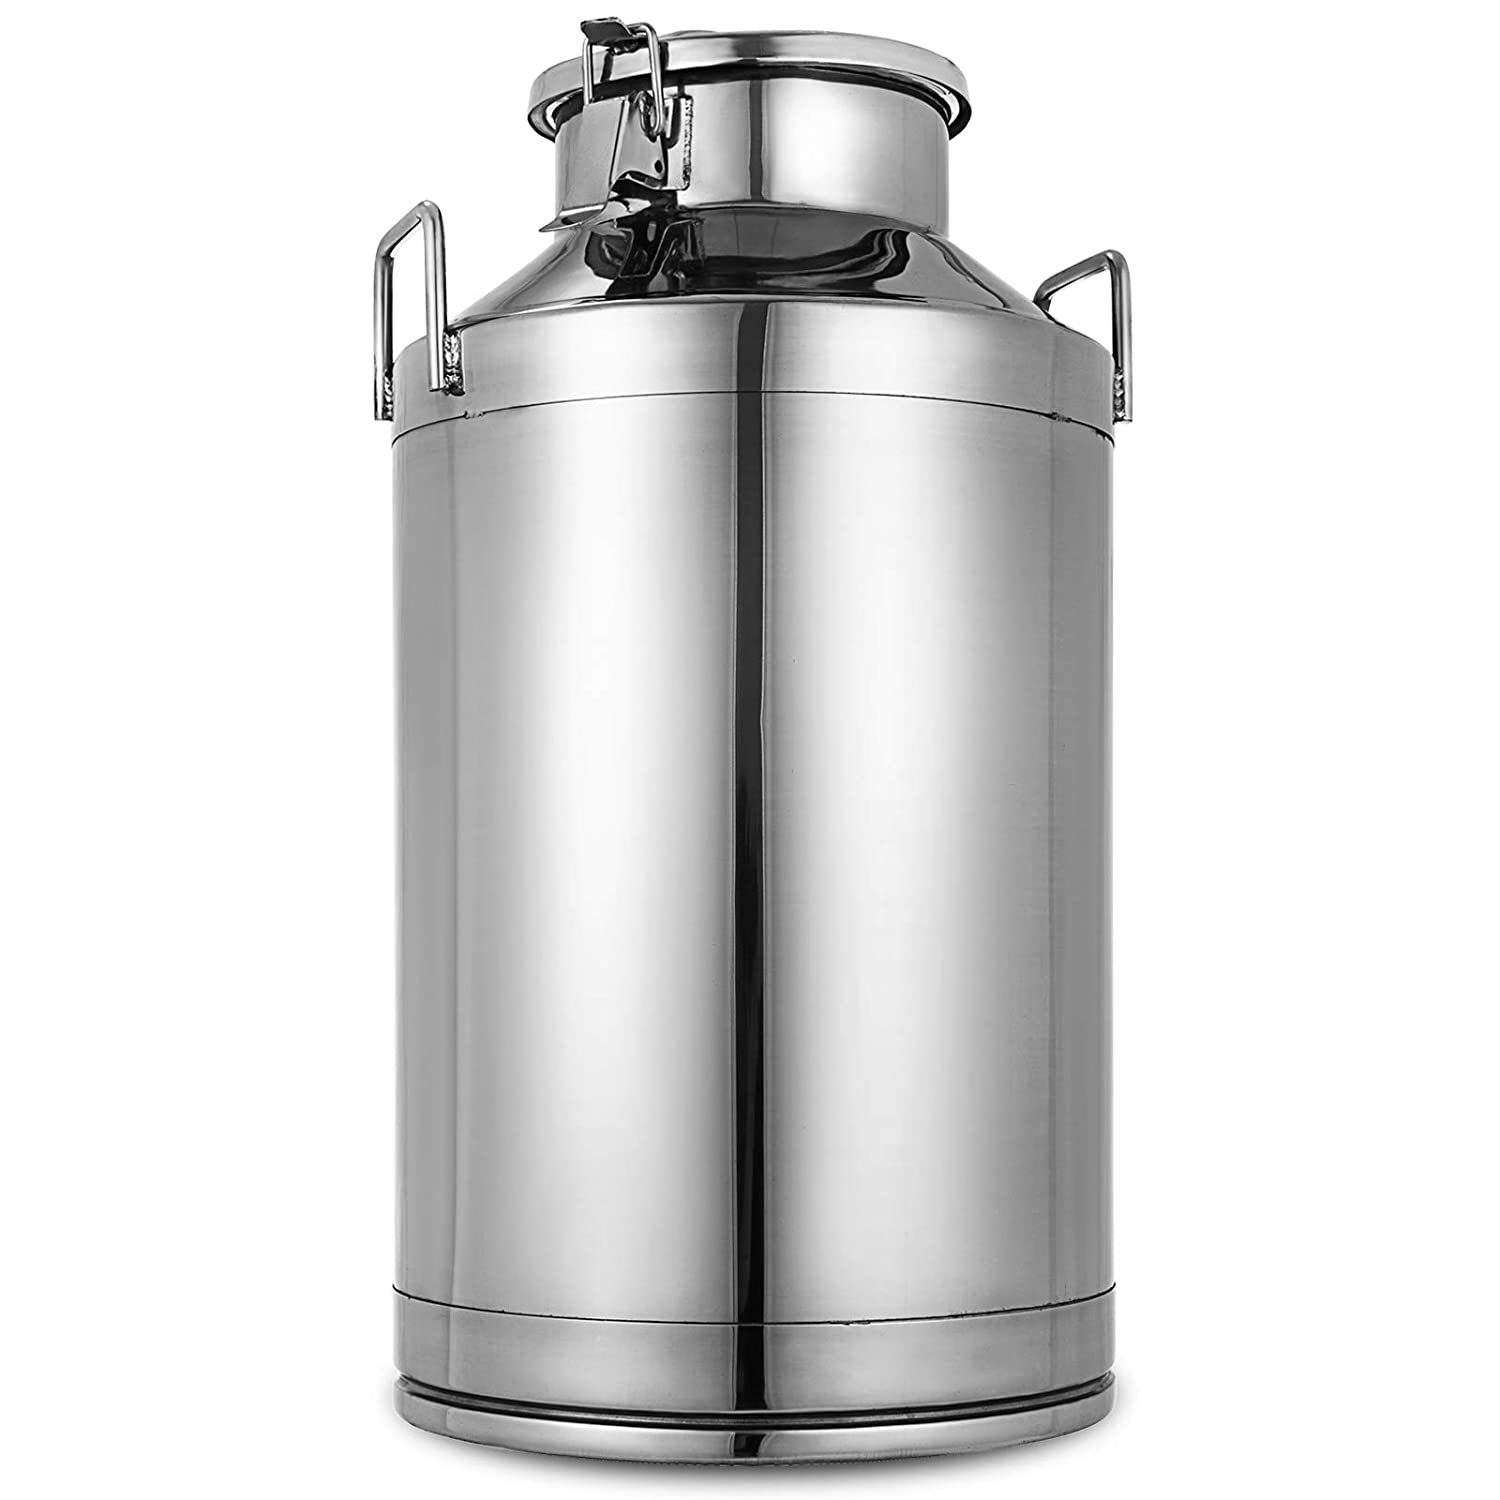 Mophorn Stainless Steel Milk Can 20 Liter Milk bucket Wine Pail Bucket 5.25 Gallon Milk Can Tote Jug with Sealed Lid Heavy Duty (20L)